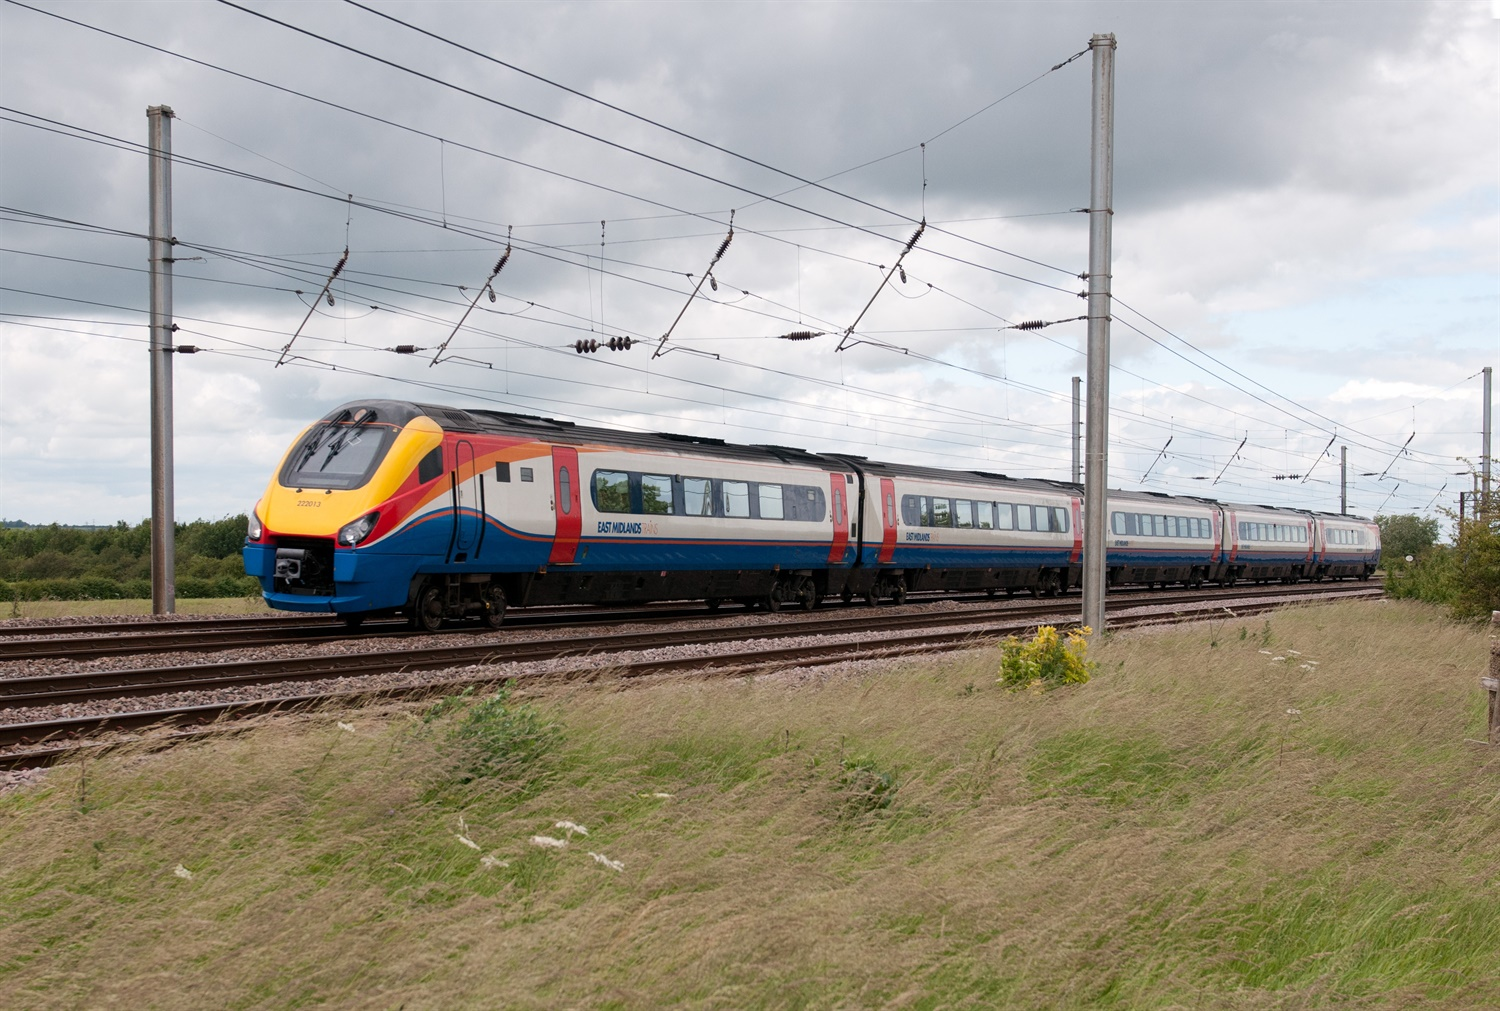 NR publishes East Midlands route study